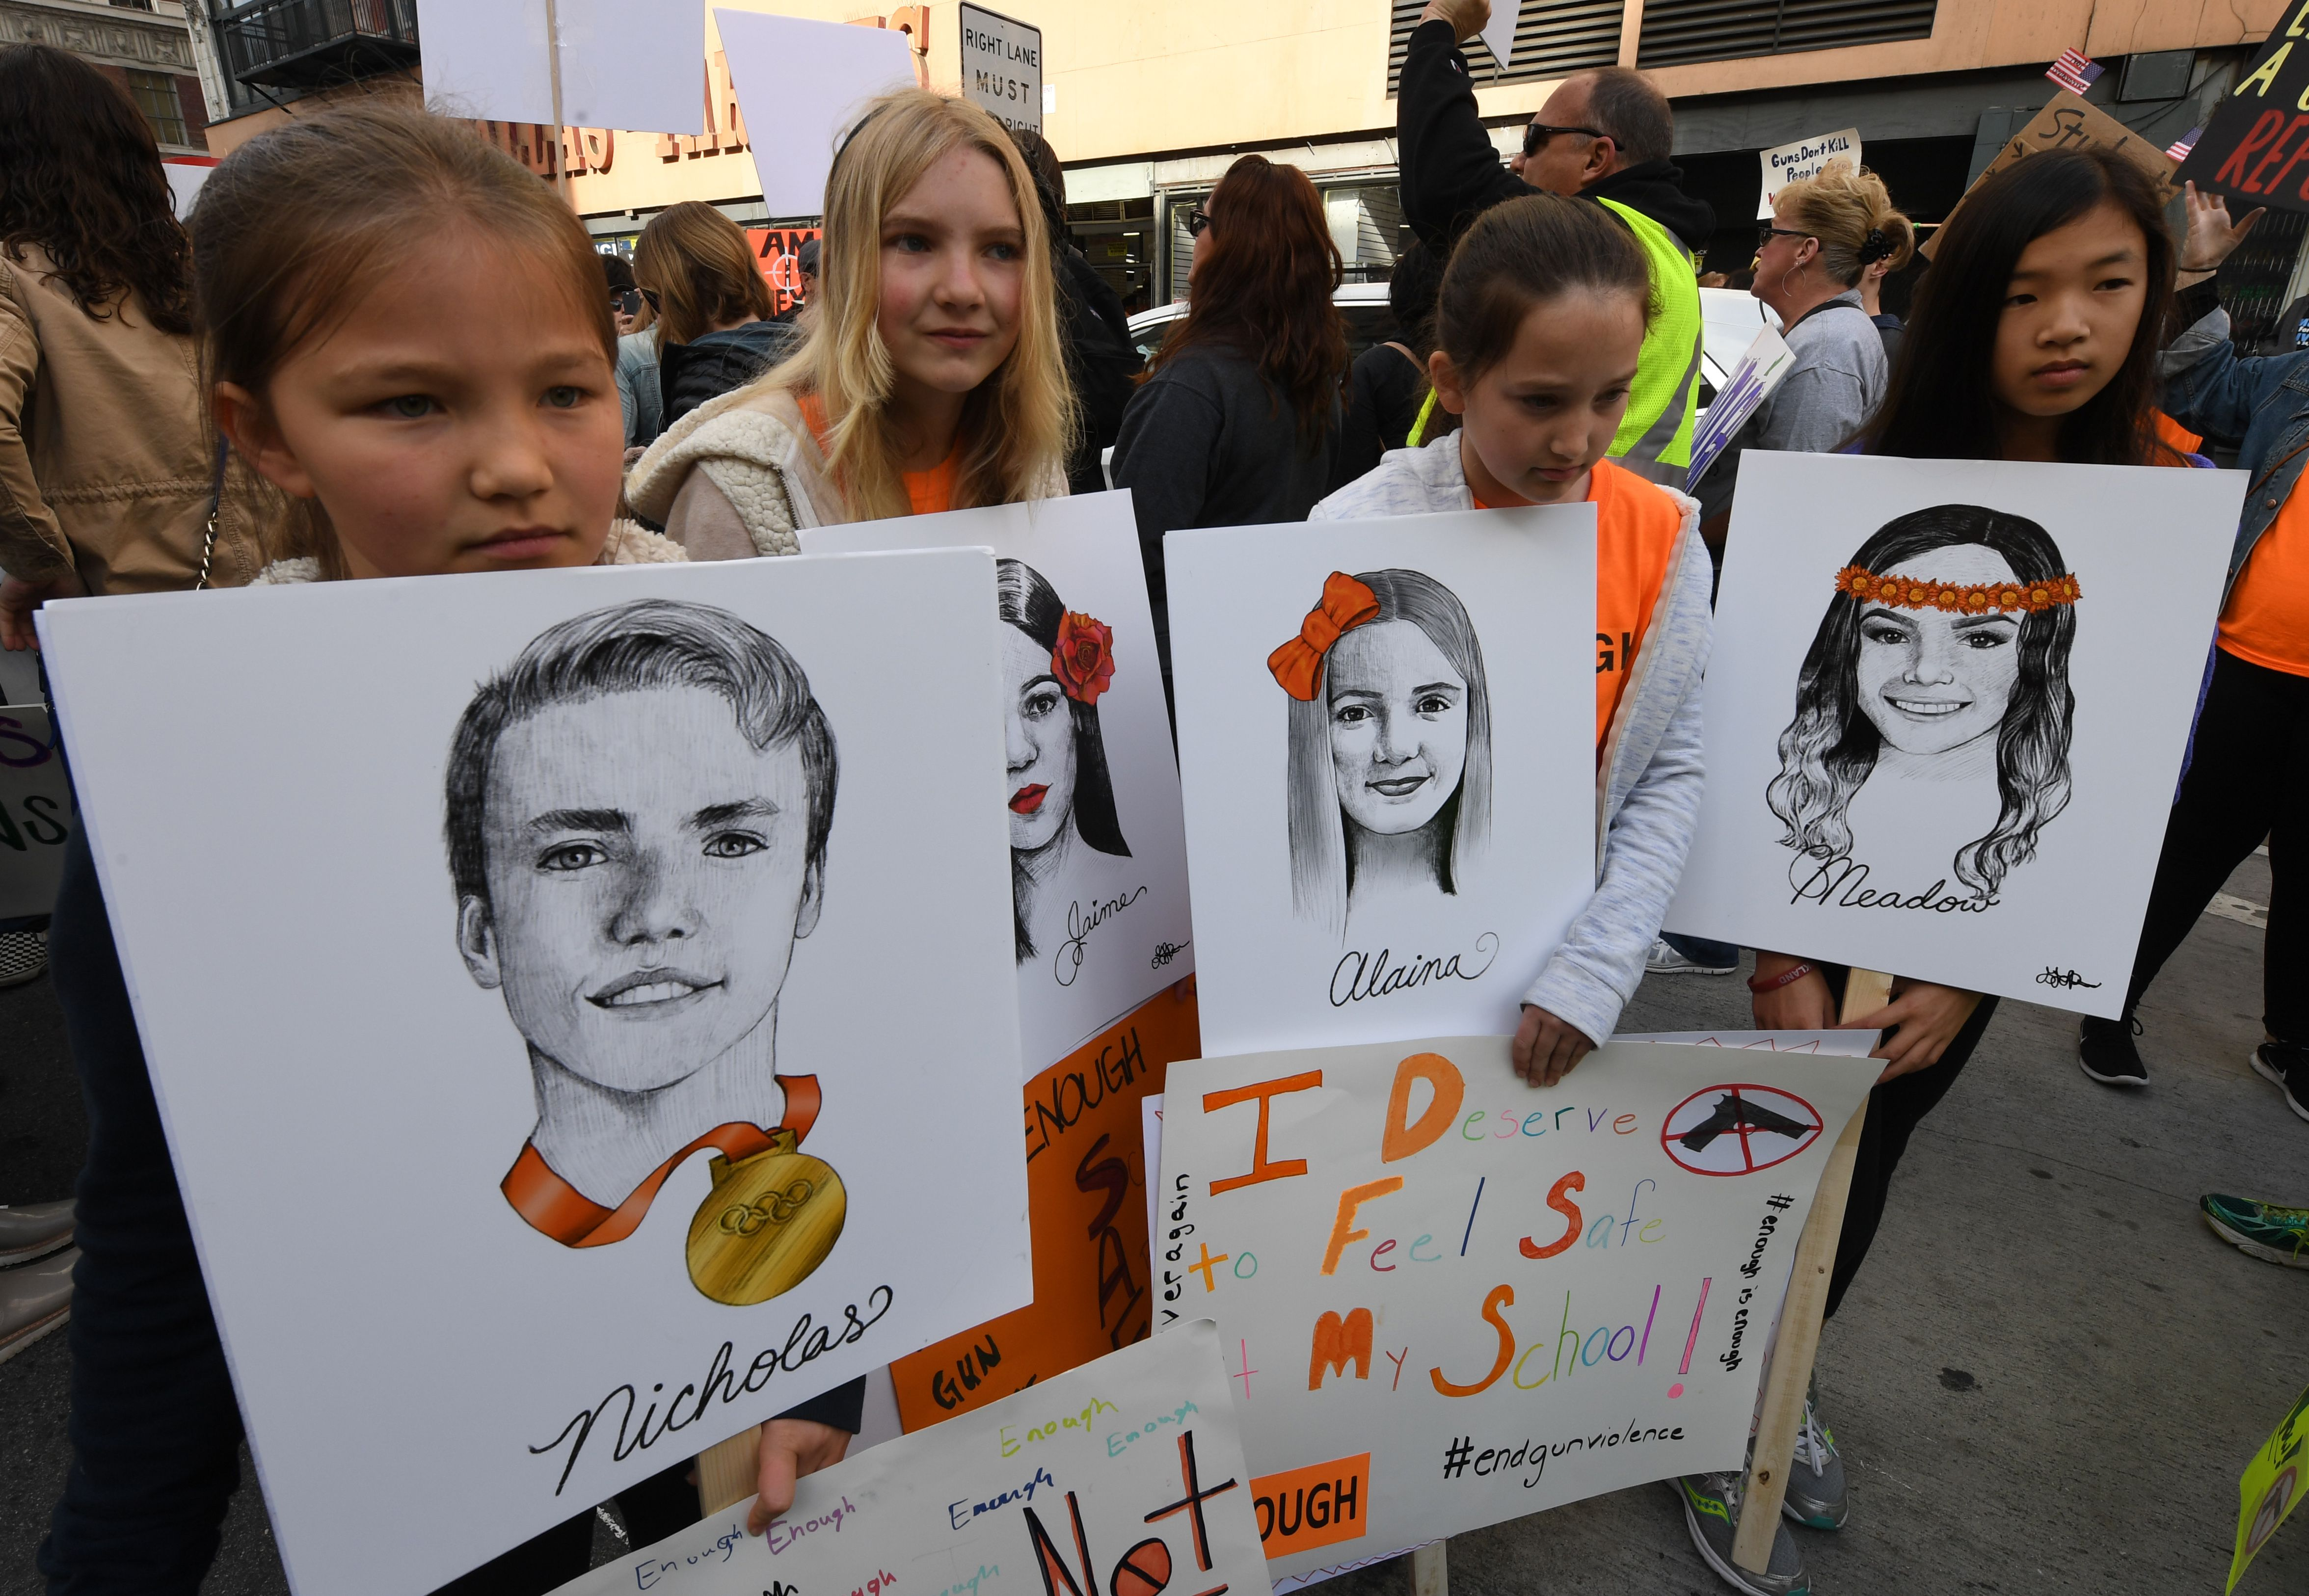 US-SCHOOL-SHOOTING-PROTEST-POLITICS